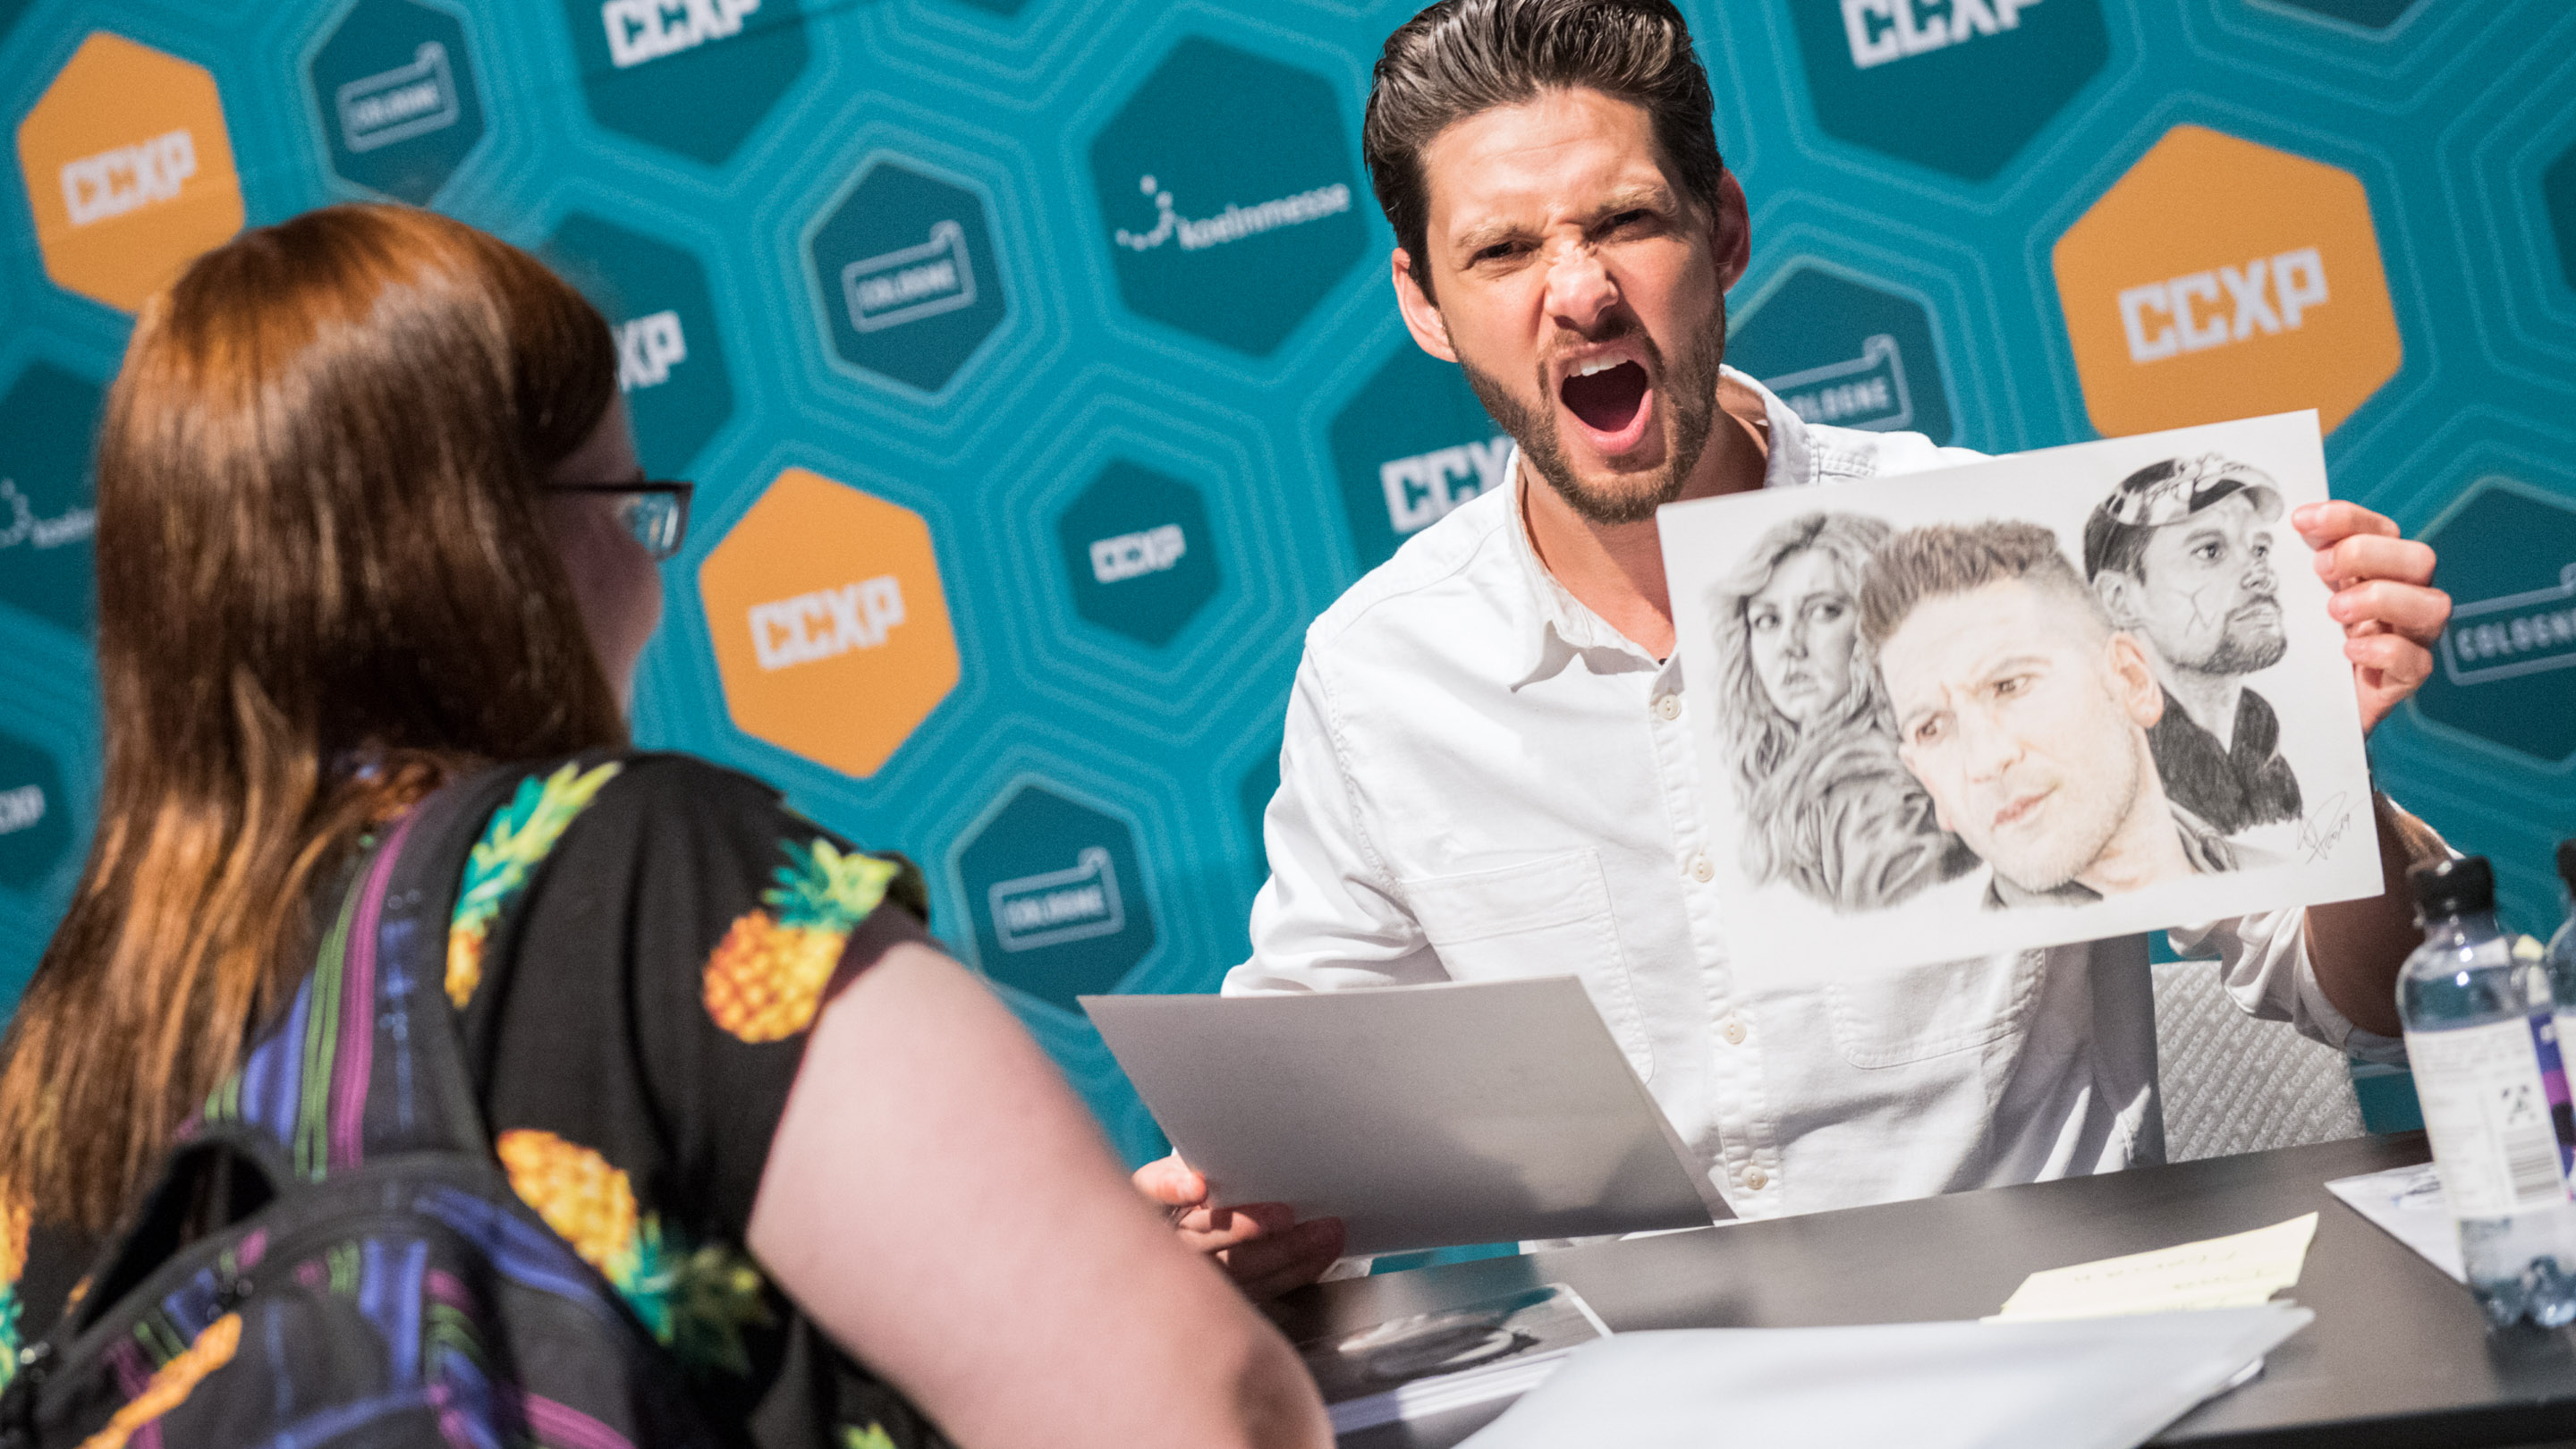 Autogrammstunde Ben Barnes, Stand: Photo & Sinage, Halle 8, Comic Con Experience 2019